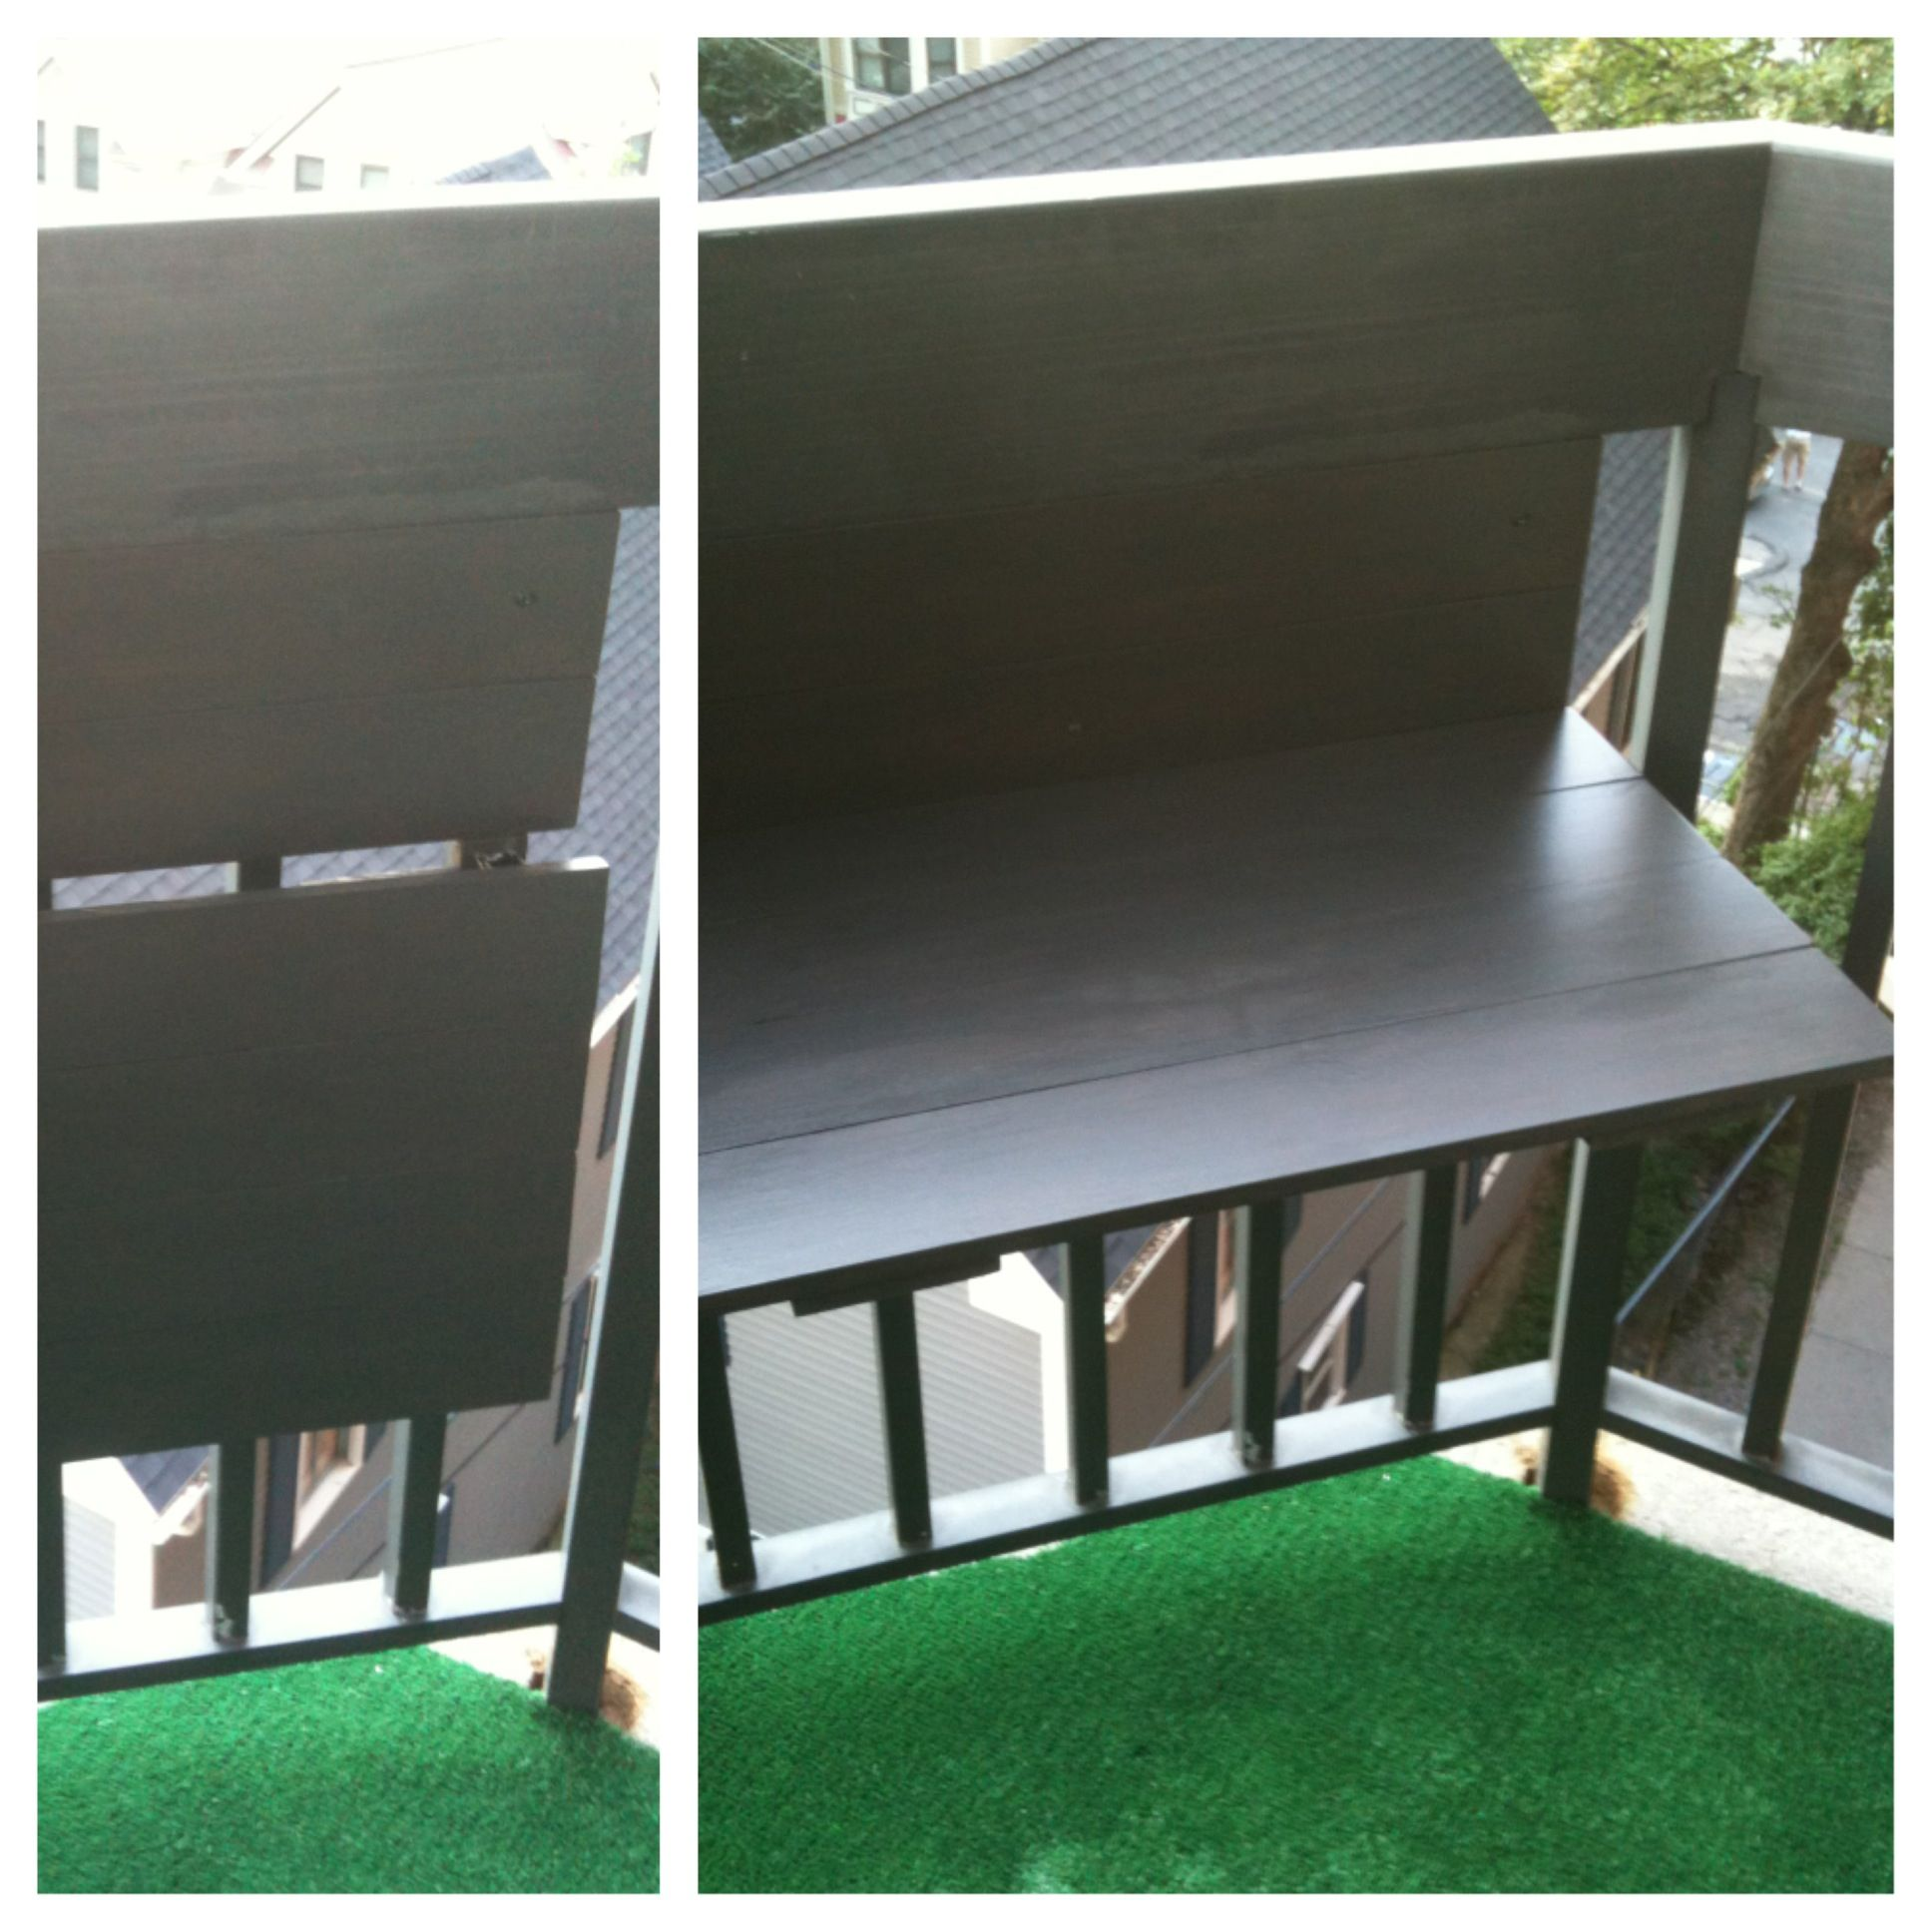 Small Apartment With Foldaway Features: DIY Foldable Balcony Table (Great For Grilling)